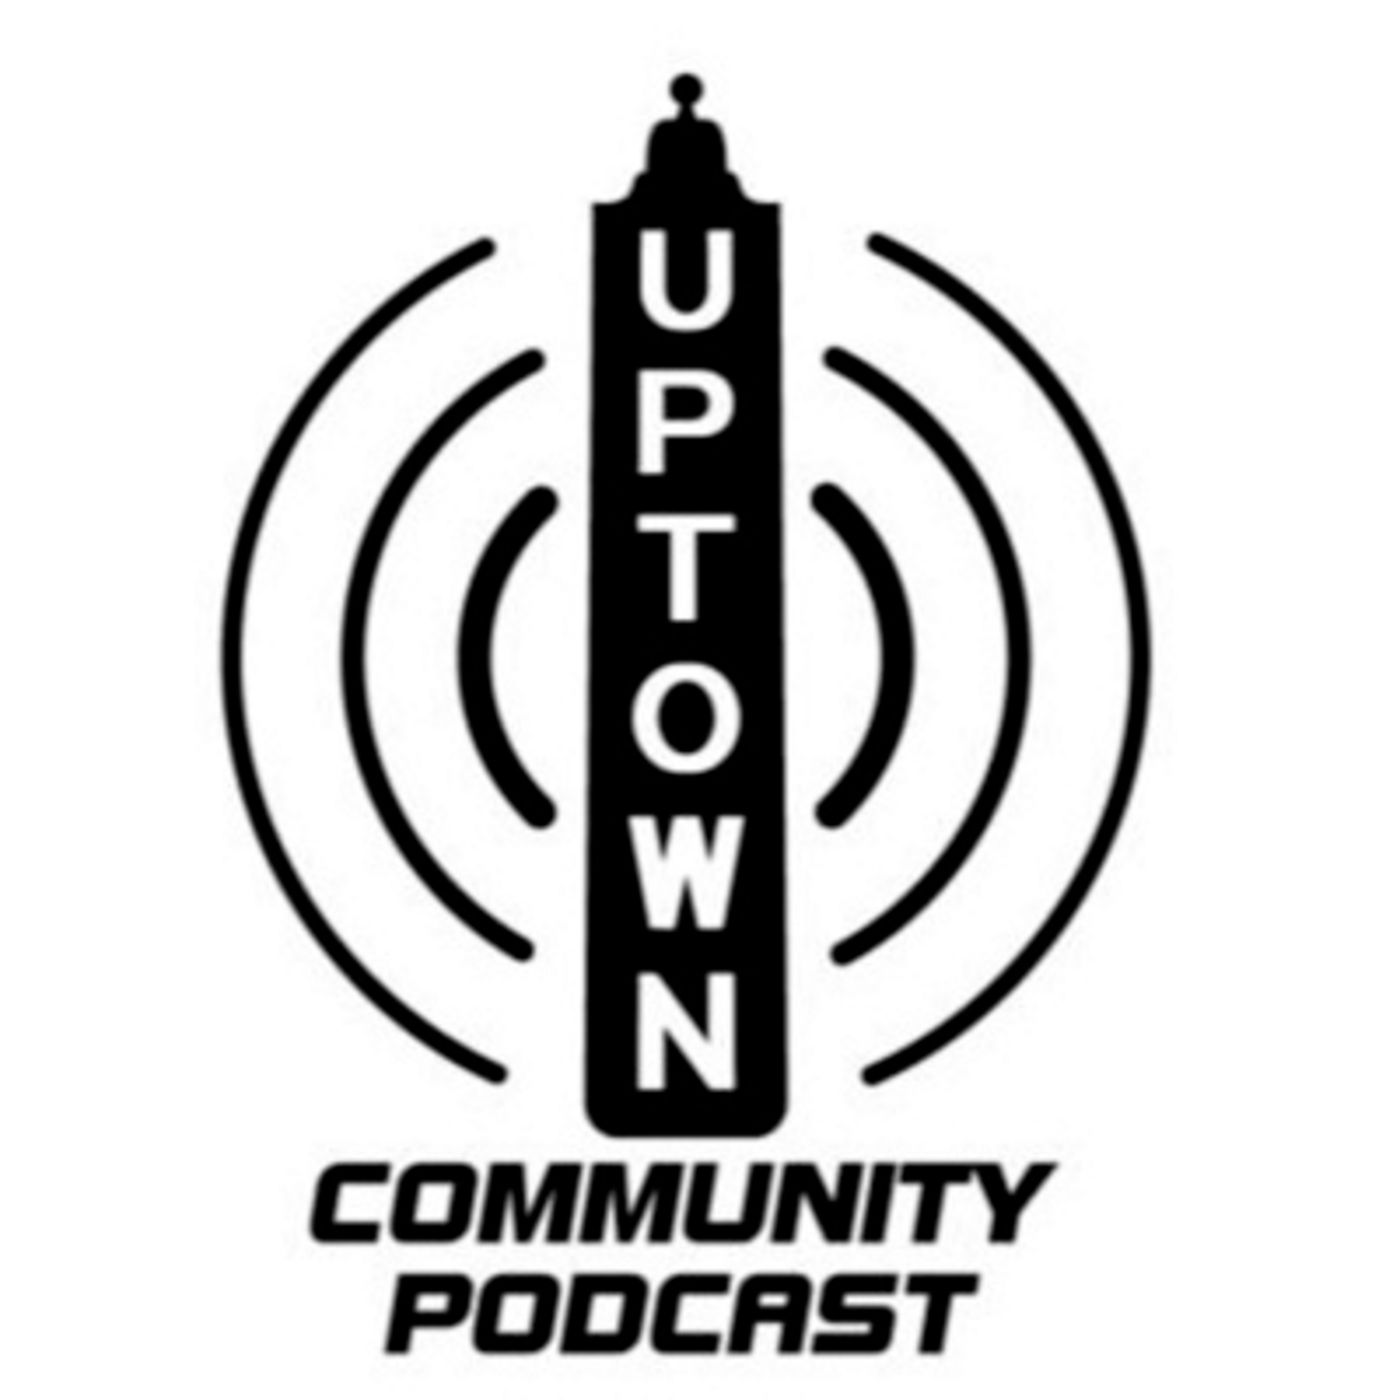 Uptown Community Podcast